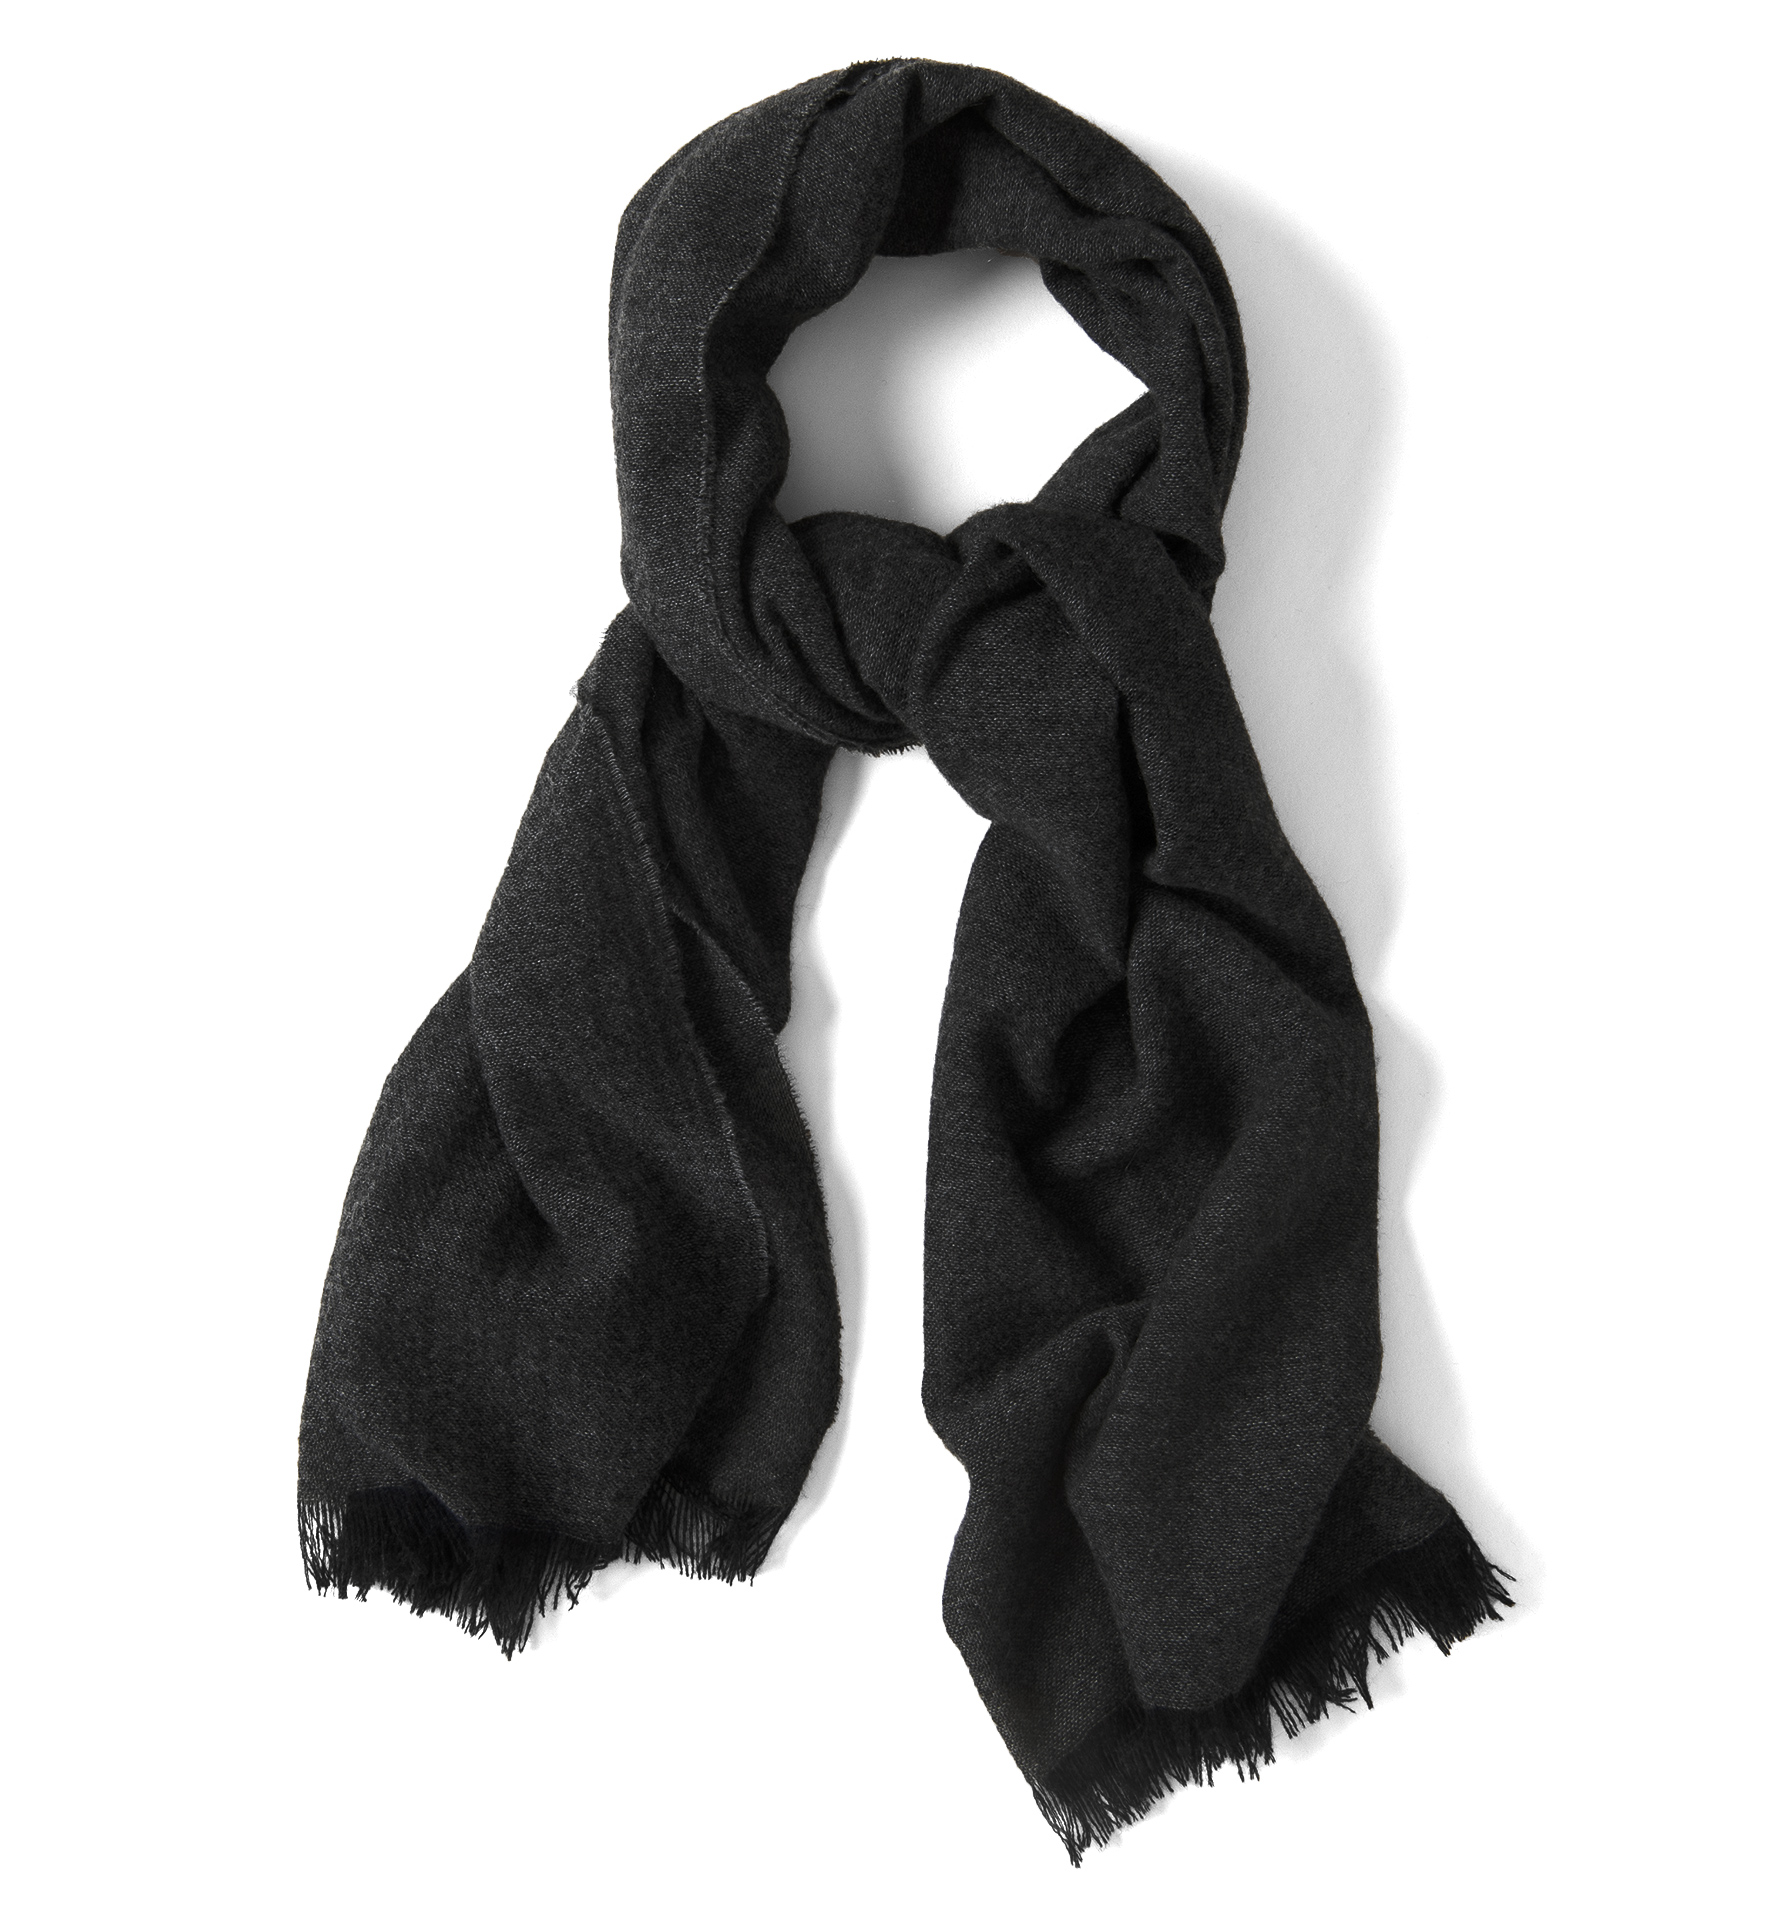 Zoom Image of Charcoal Cashmere Scarf